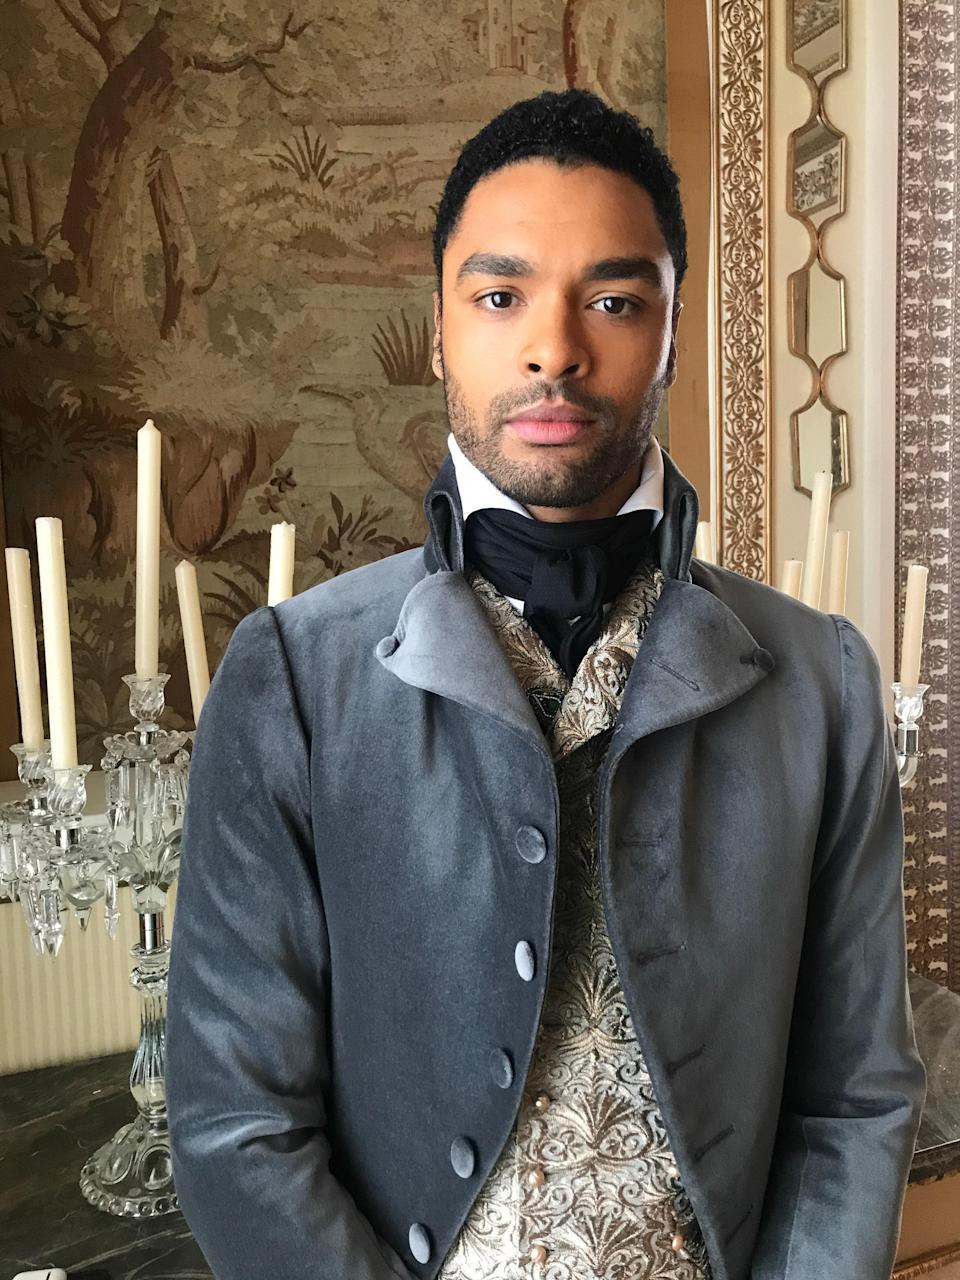 """Regé-Jean Page was thrilled to come on board as the Duke of Hastings: """"I very much enjoy the type of pop culture the Shondaland family creates. The chance to tell a British [period drama/love] story, which I hadn't done in a while, was a lovely opportunity, so I was happy to jump on."""""""